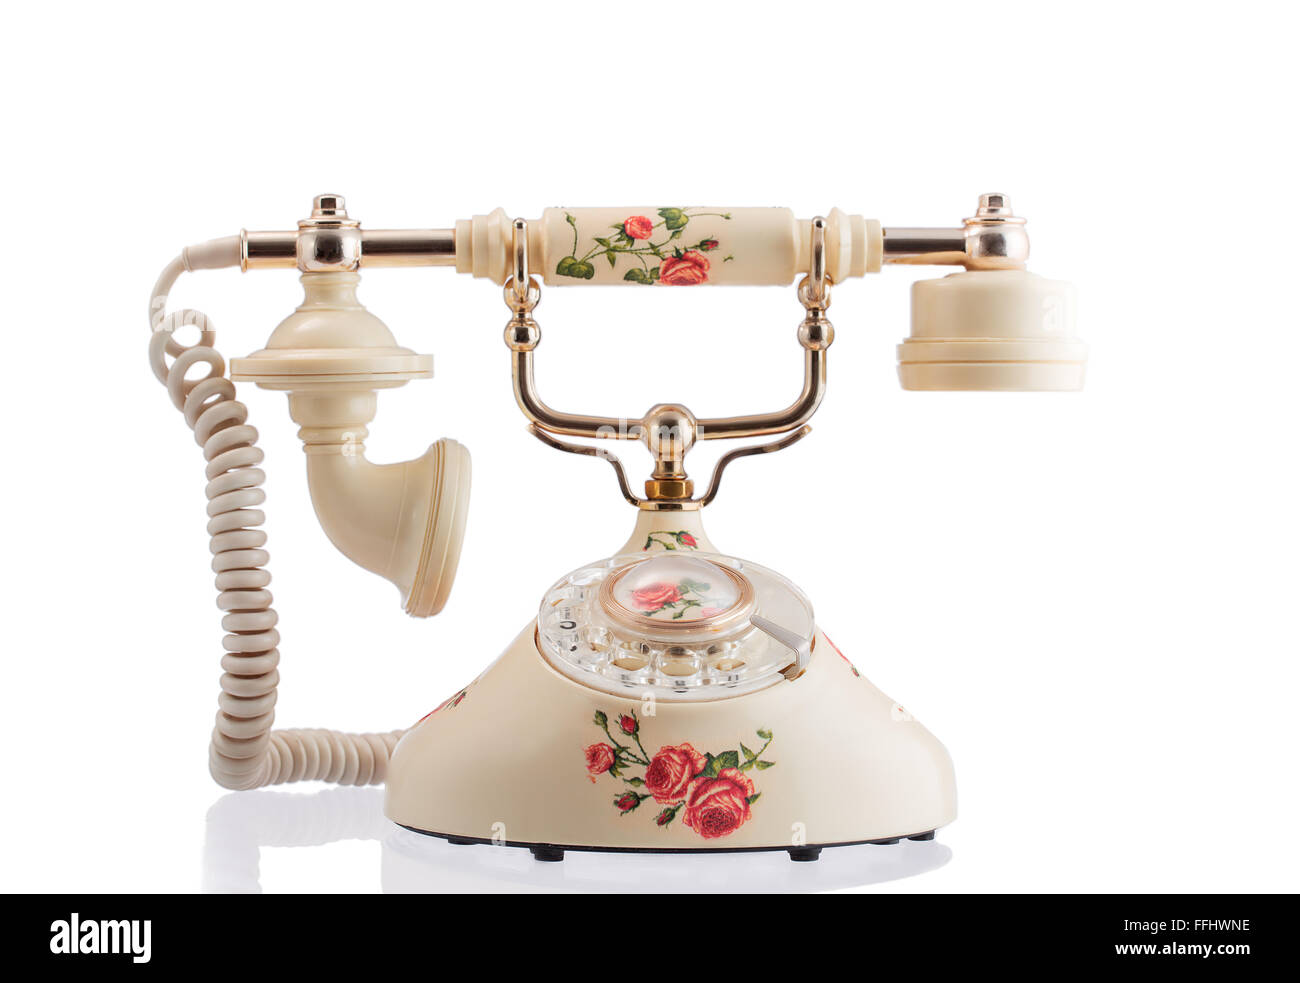 Telephone. - Stock Image